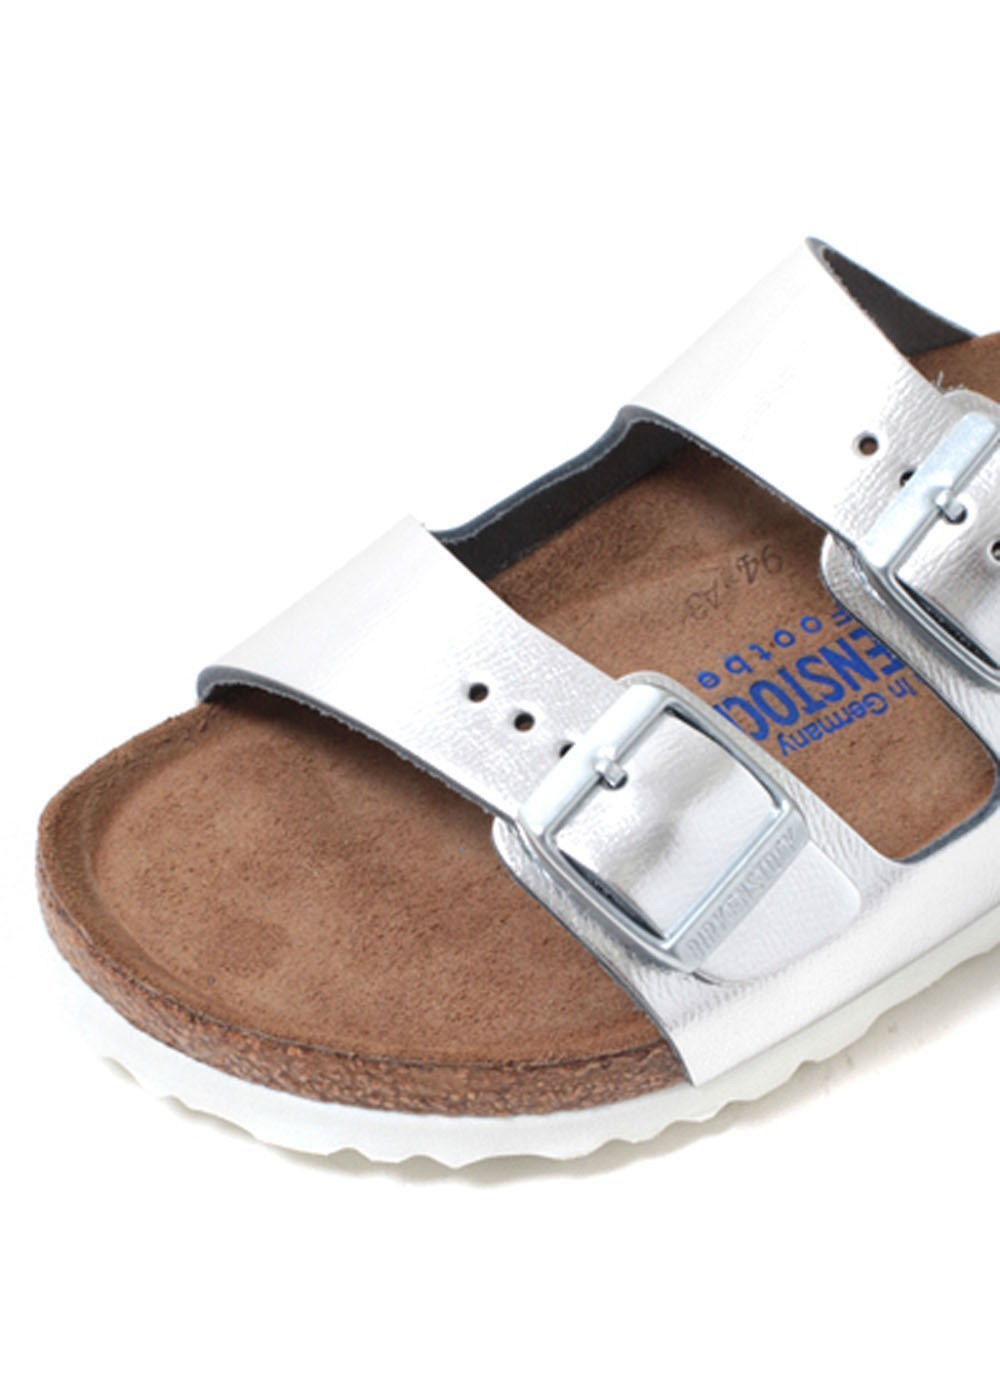 【最大41%OFF】ARIZONA|LIQUID SILVER|サンダル|BIRKENSTOCK_(E)